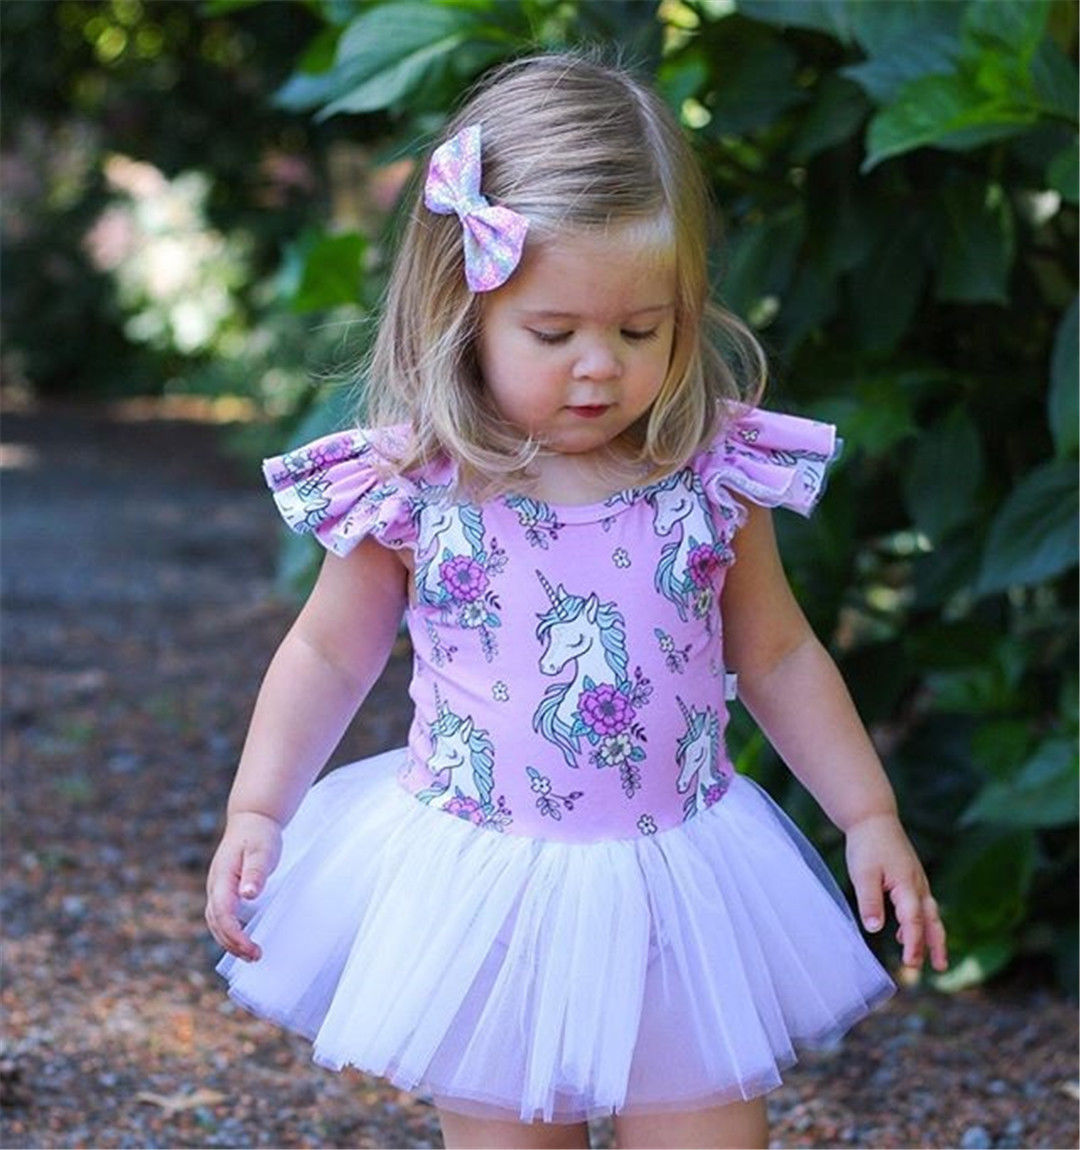 2018 New Princess Baby Girls Unicorn Romper Cute Cartoon Print Tulle Tutu Romper For Girls Party Birthday Costumes Jumpsuit цены онлайн